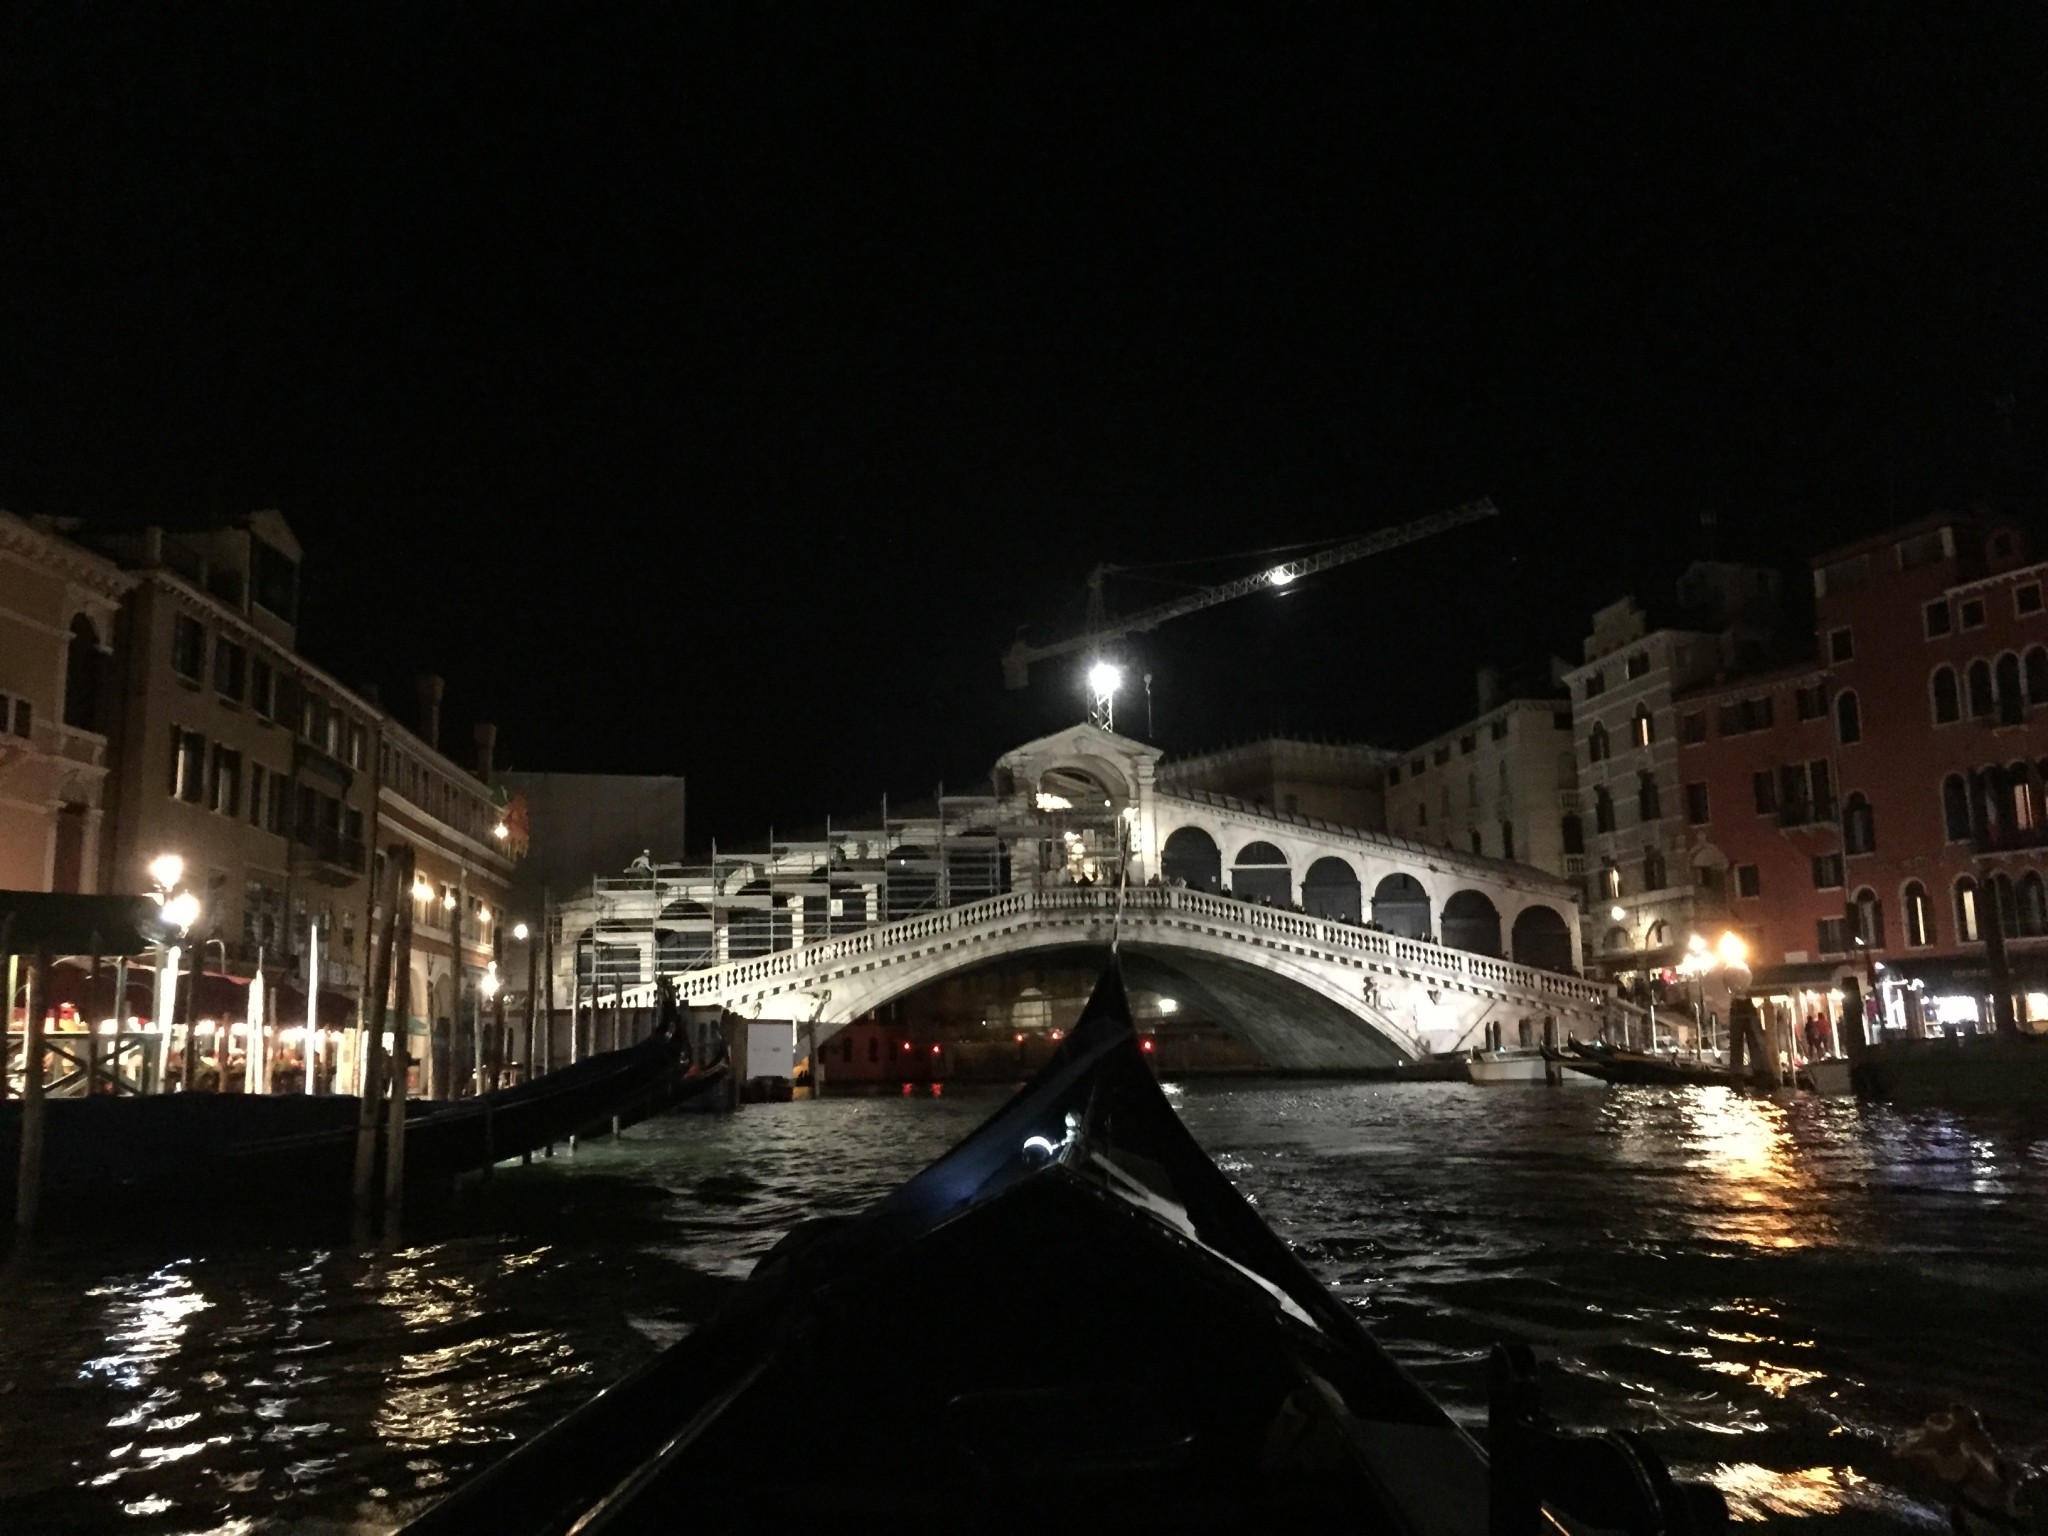 The Rialto Bridge is even prettier at night when seen from the waterways.